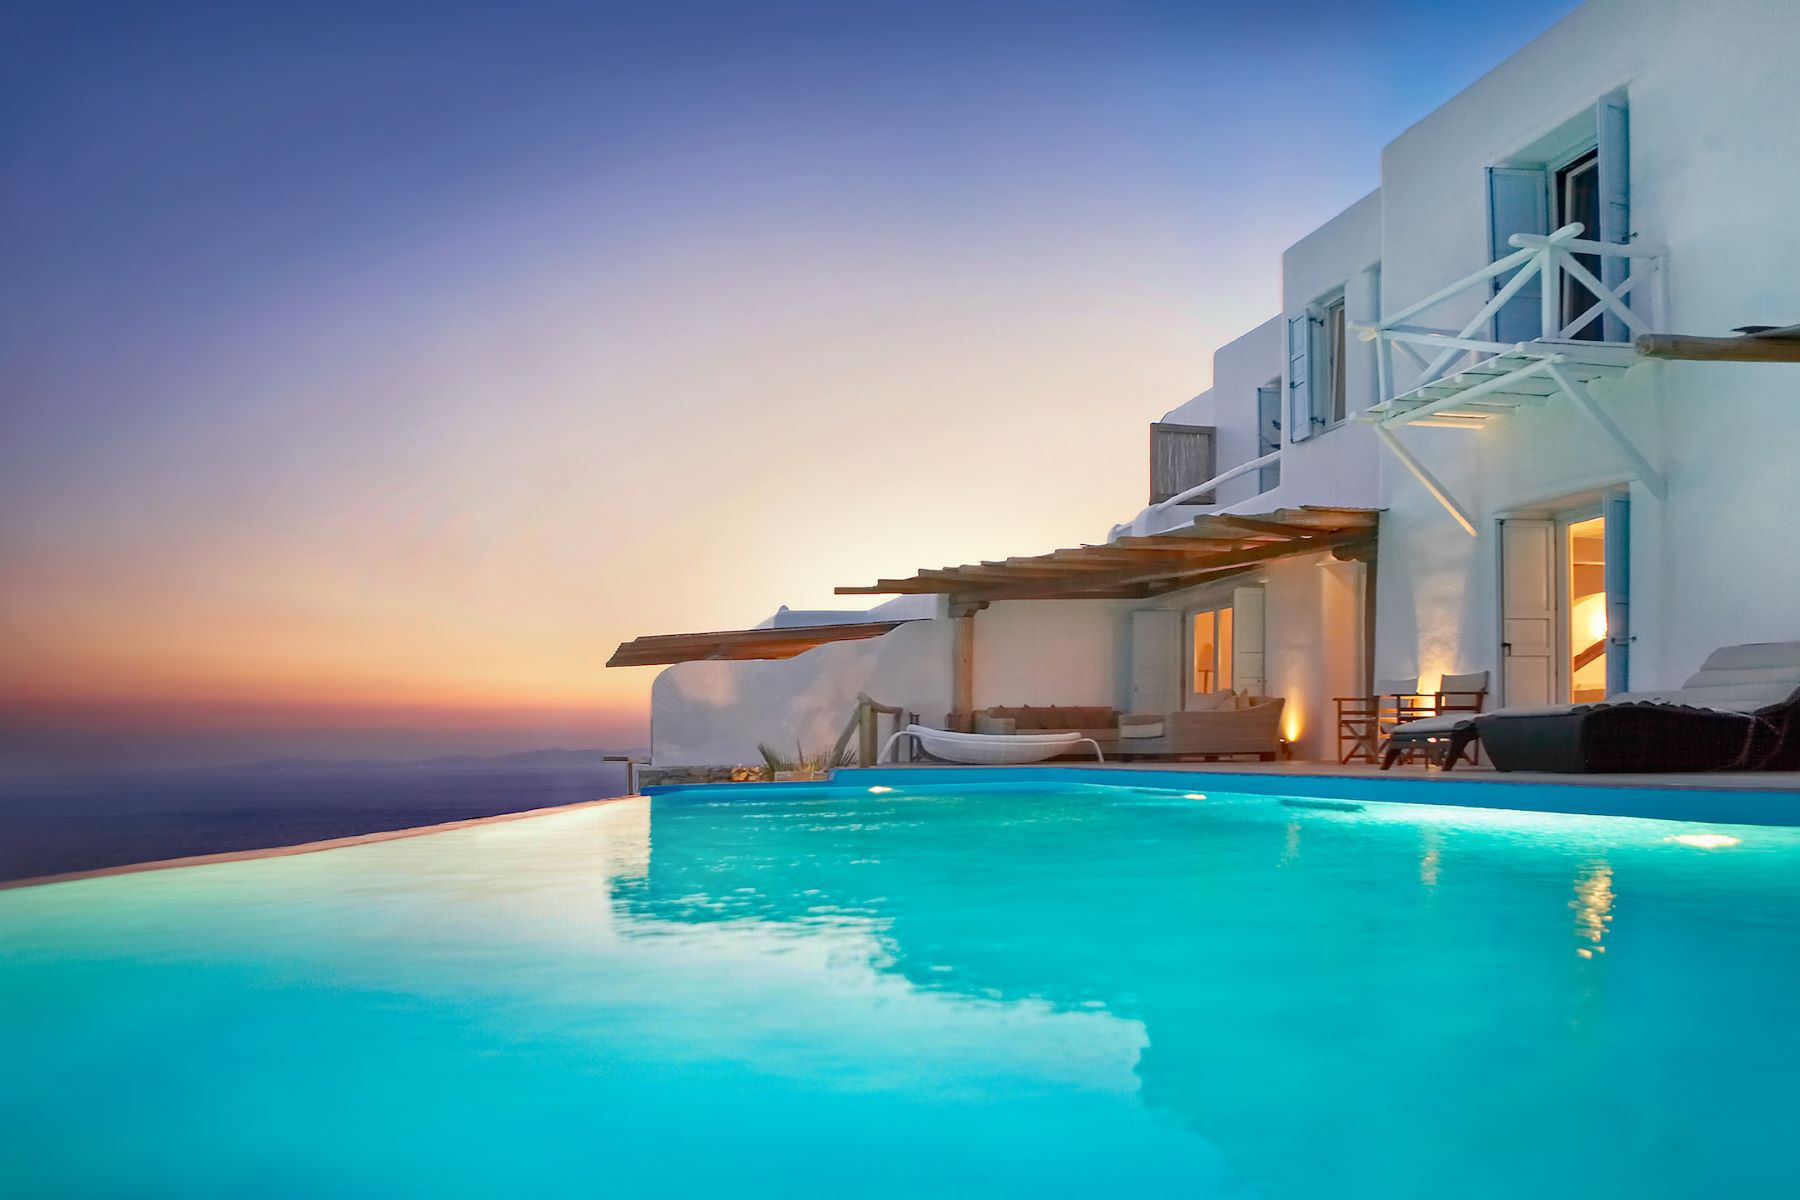 Single Family Home for Sale at Royal Retreat Mykonos, Southern Aegean, Greece